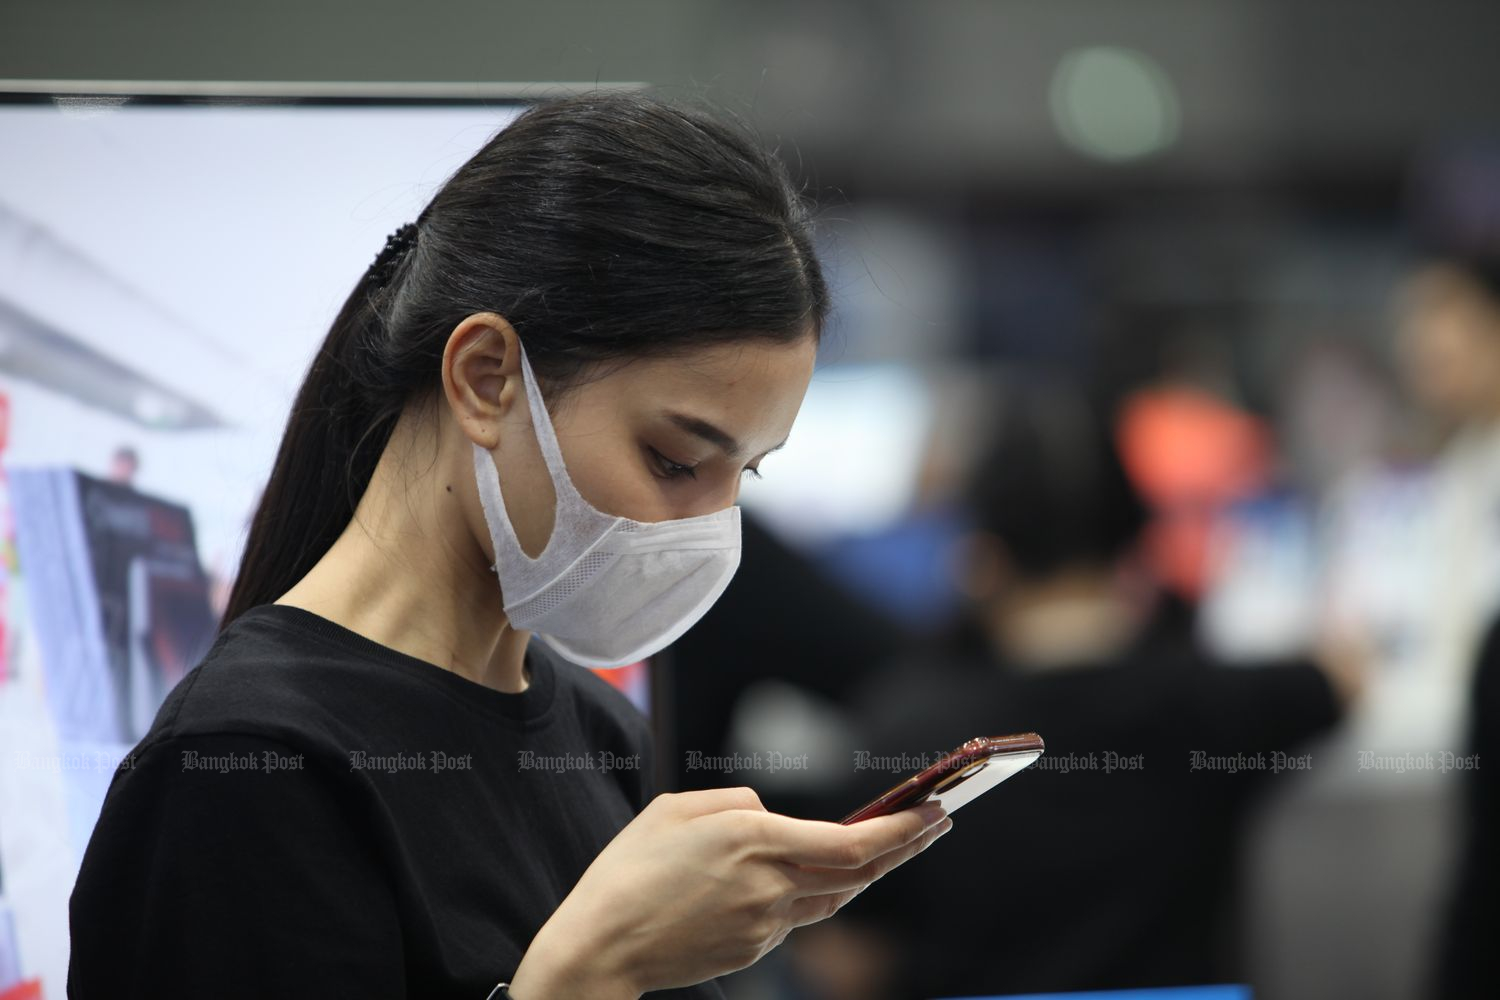 More than 3 million mobile users applied for 10 free gigabytes of data on Friday. (Photo by Apichart Jinakul)